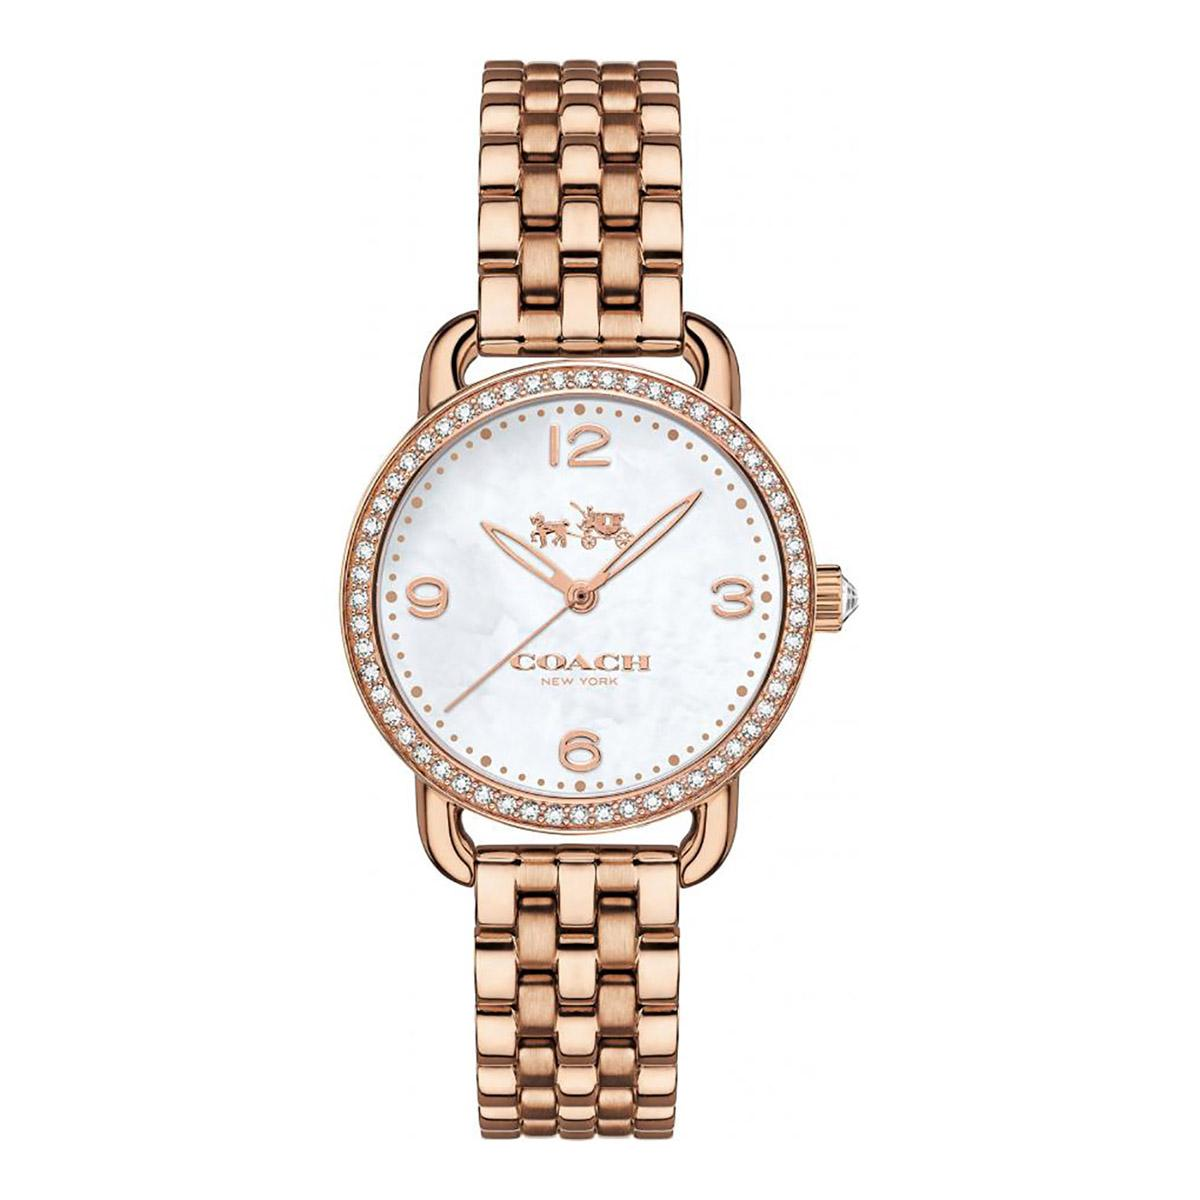 Promo Coach Watch Delancey Rose Gold Stainless Steel Case Stainless Steel Bracelet Ladies 14502479